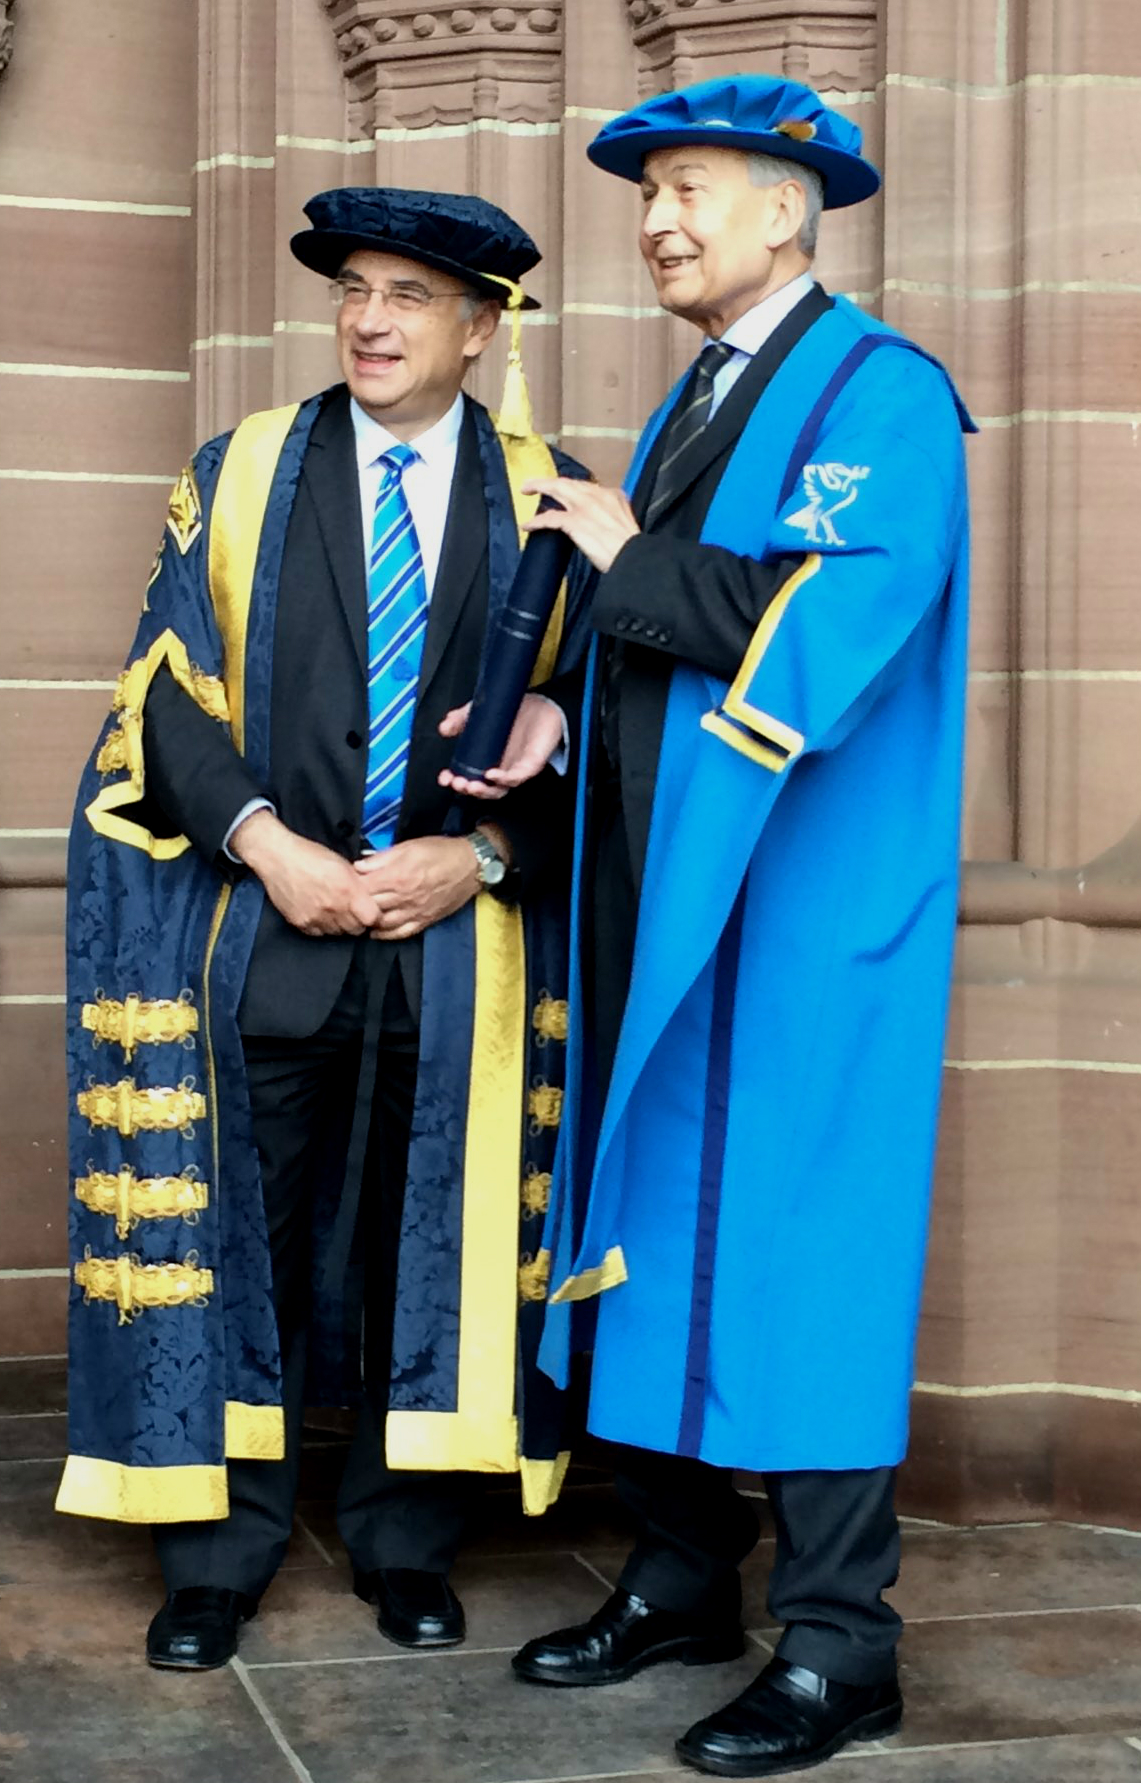 Birkenhead MP Frank Field is pictured with Sir Brian Leveson  who is Chancellor of Liverpool John Moores University